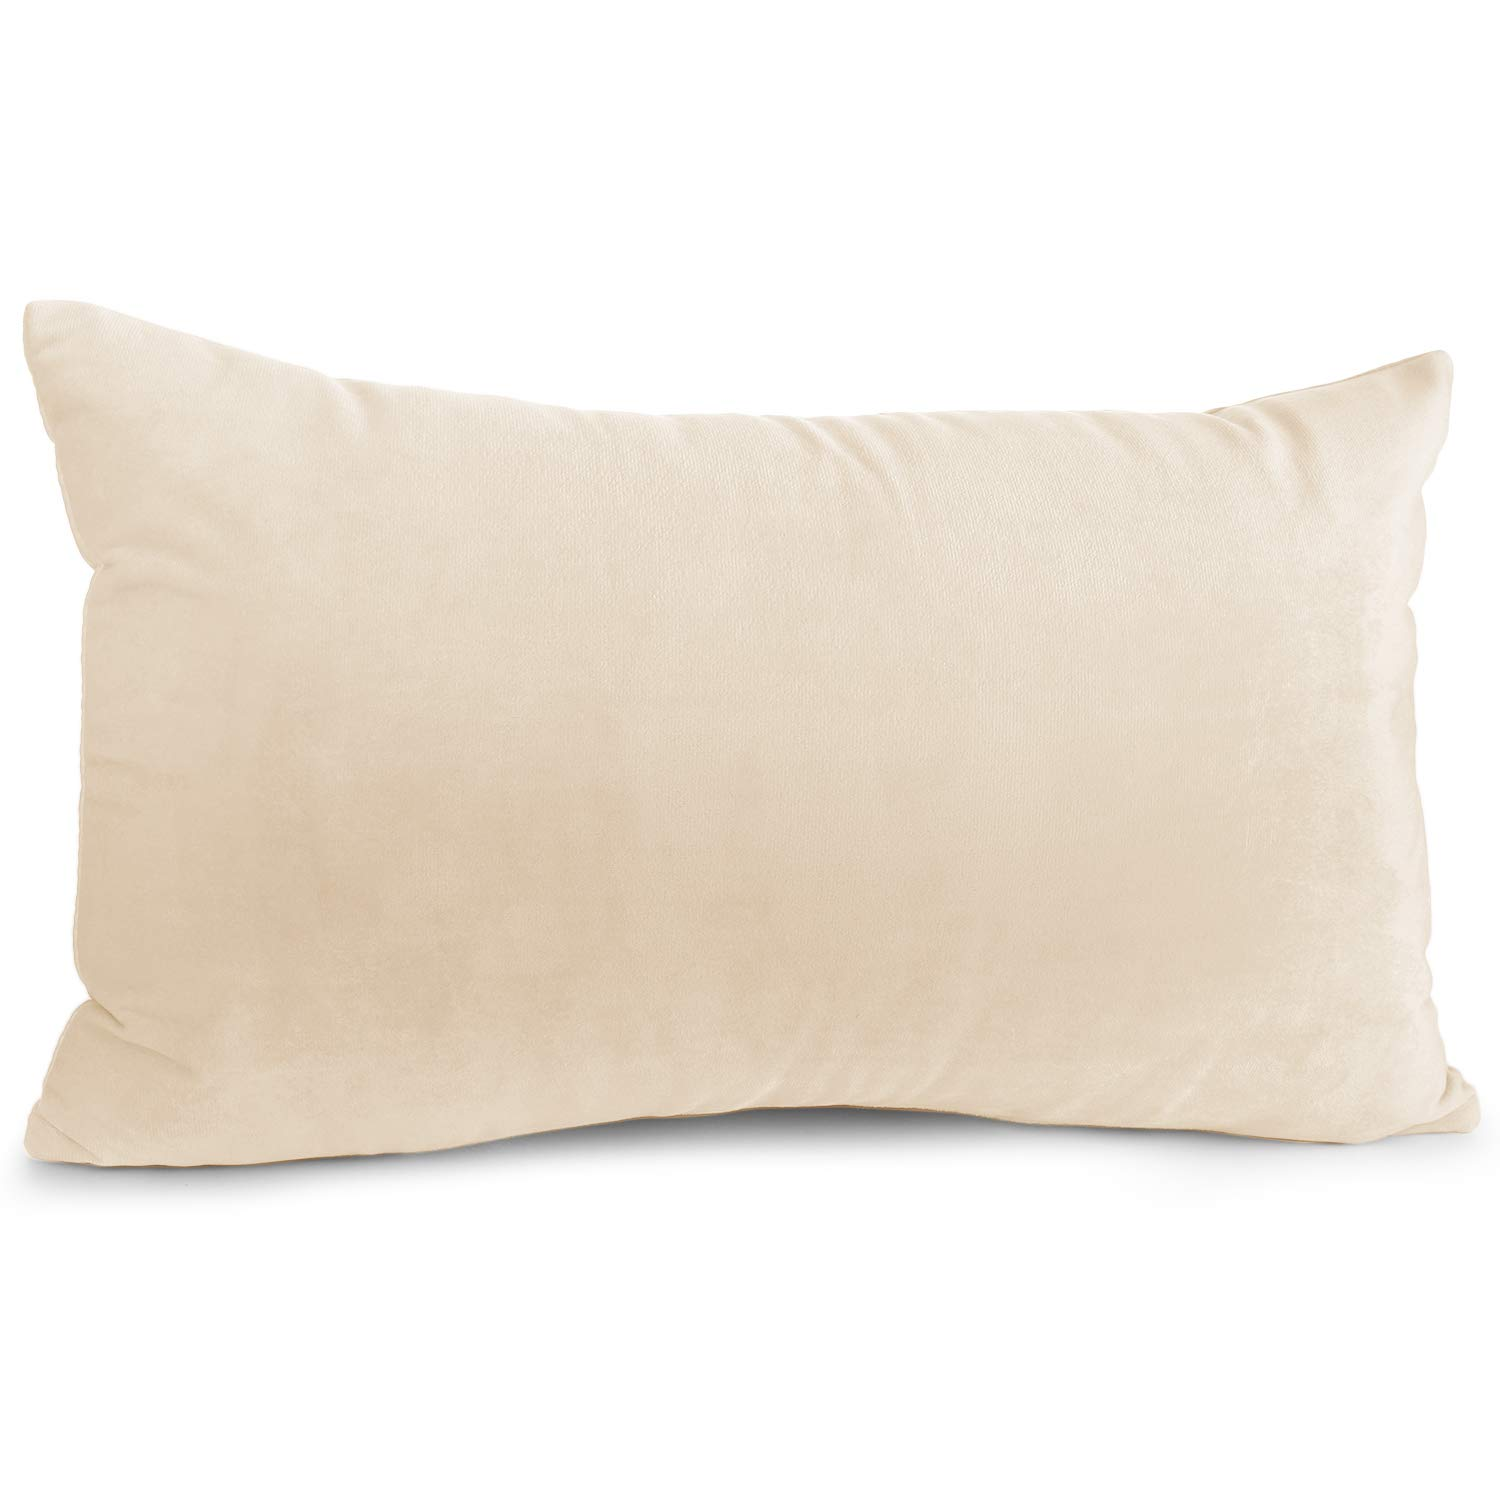 """Nestl Bedding Throw Pillow Cover 12"""" x 20"""" Soft Square Decorative Throw Pillow Covers Cozy Velvet Cushion Case for Sofa Couch Bedroom - Beige Cream"""